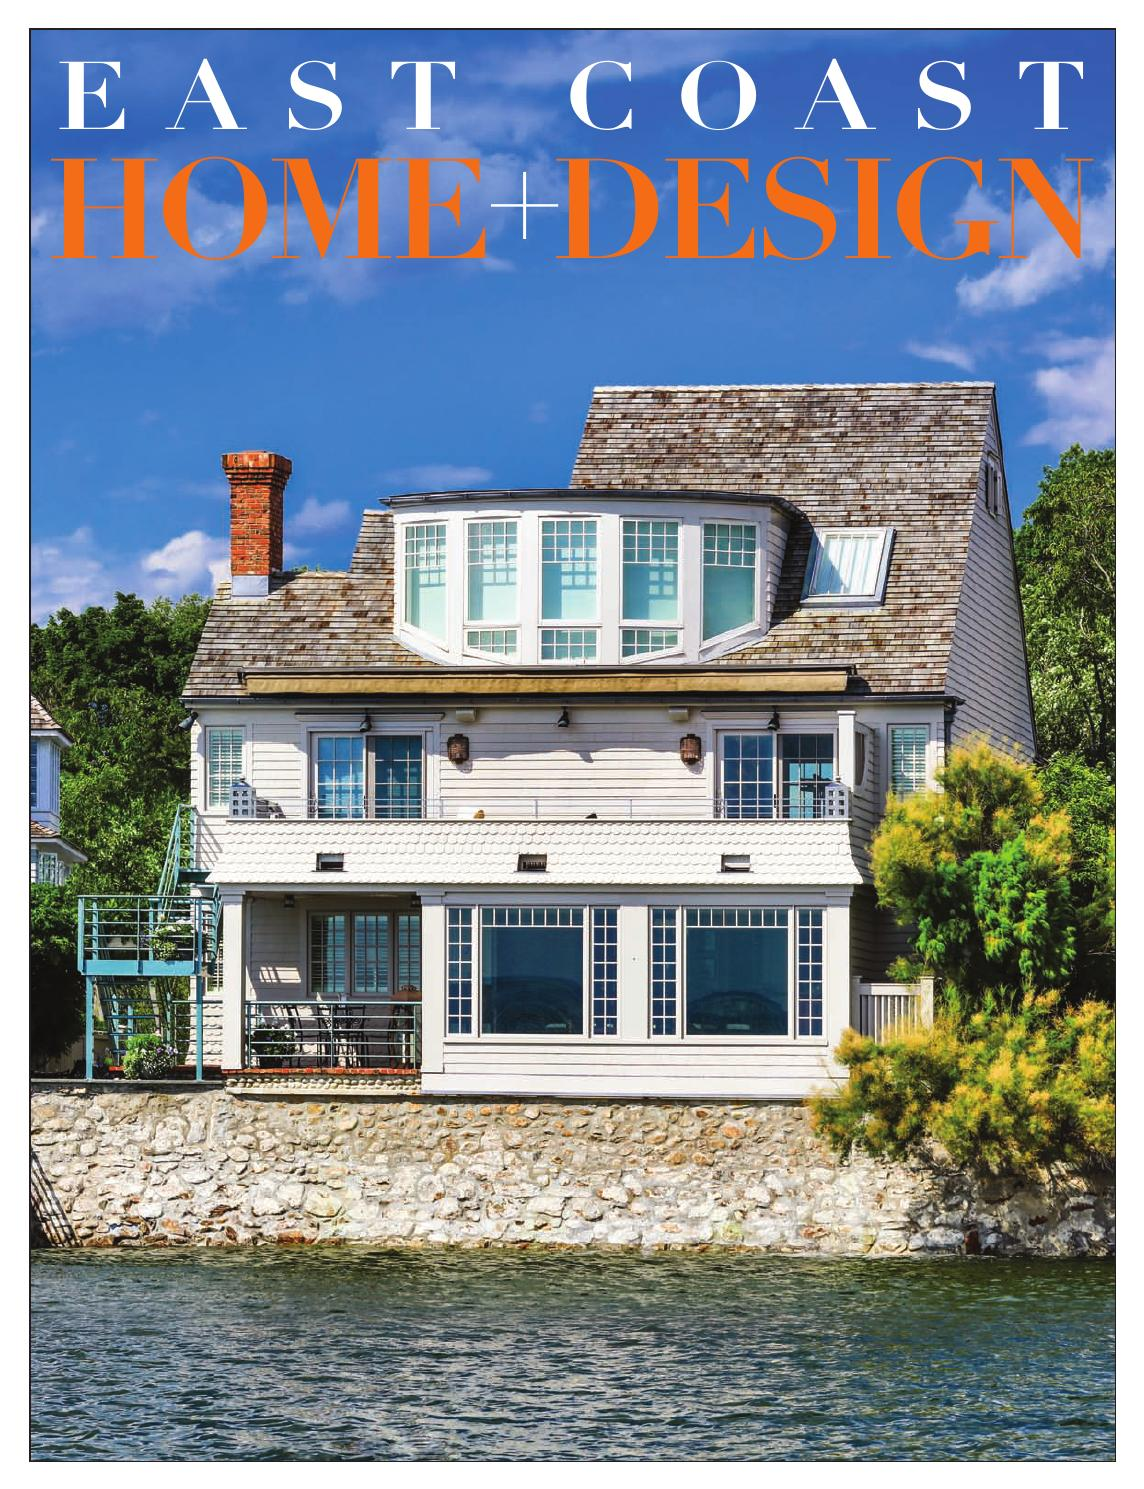 east coast home design march april 2016 by east coast home east coast home design march april 2016 by east coast home publishing issuu